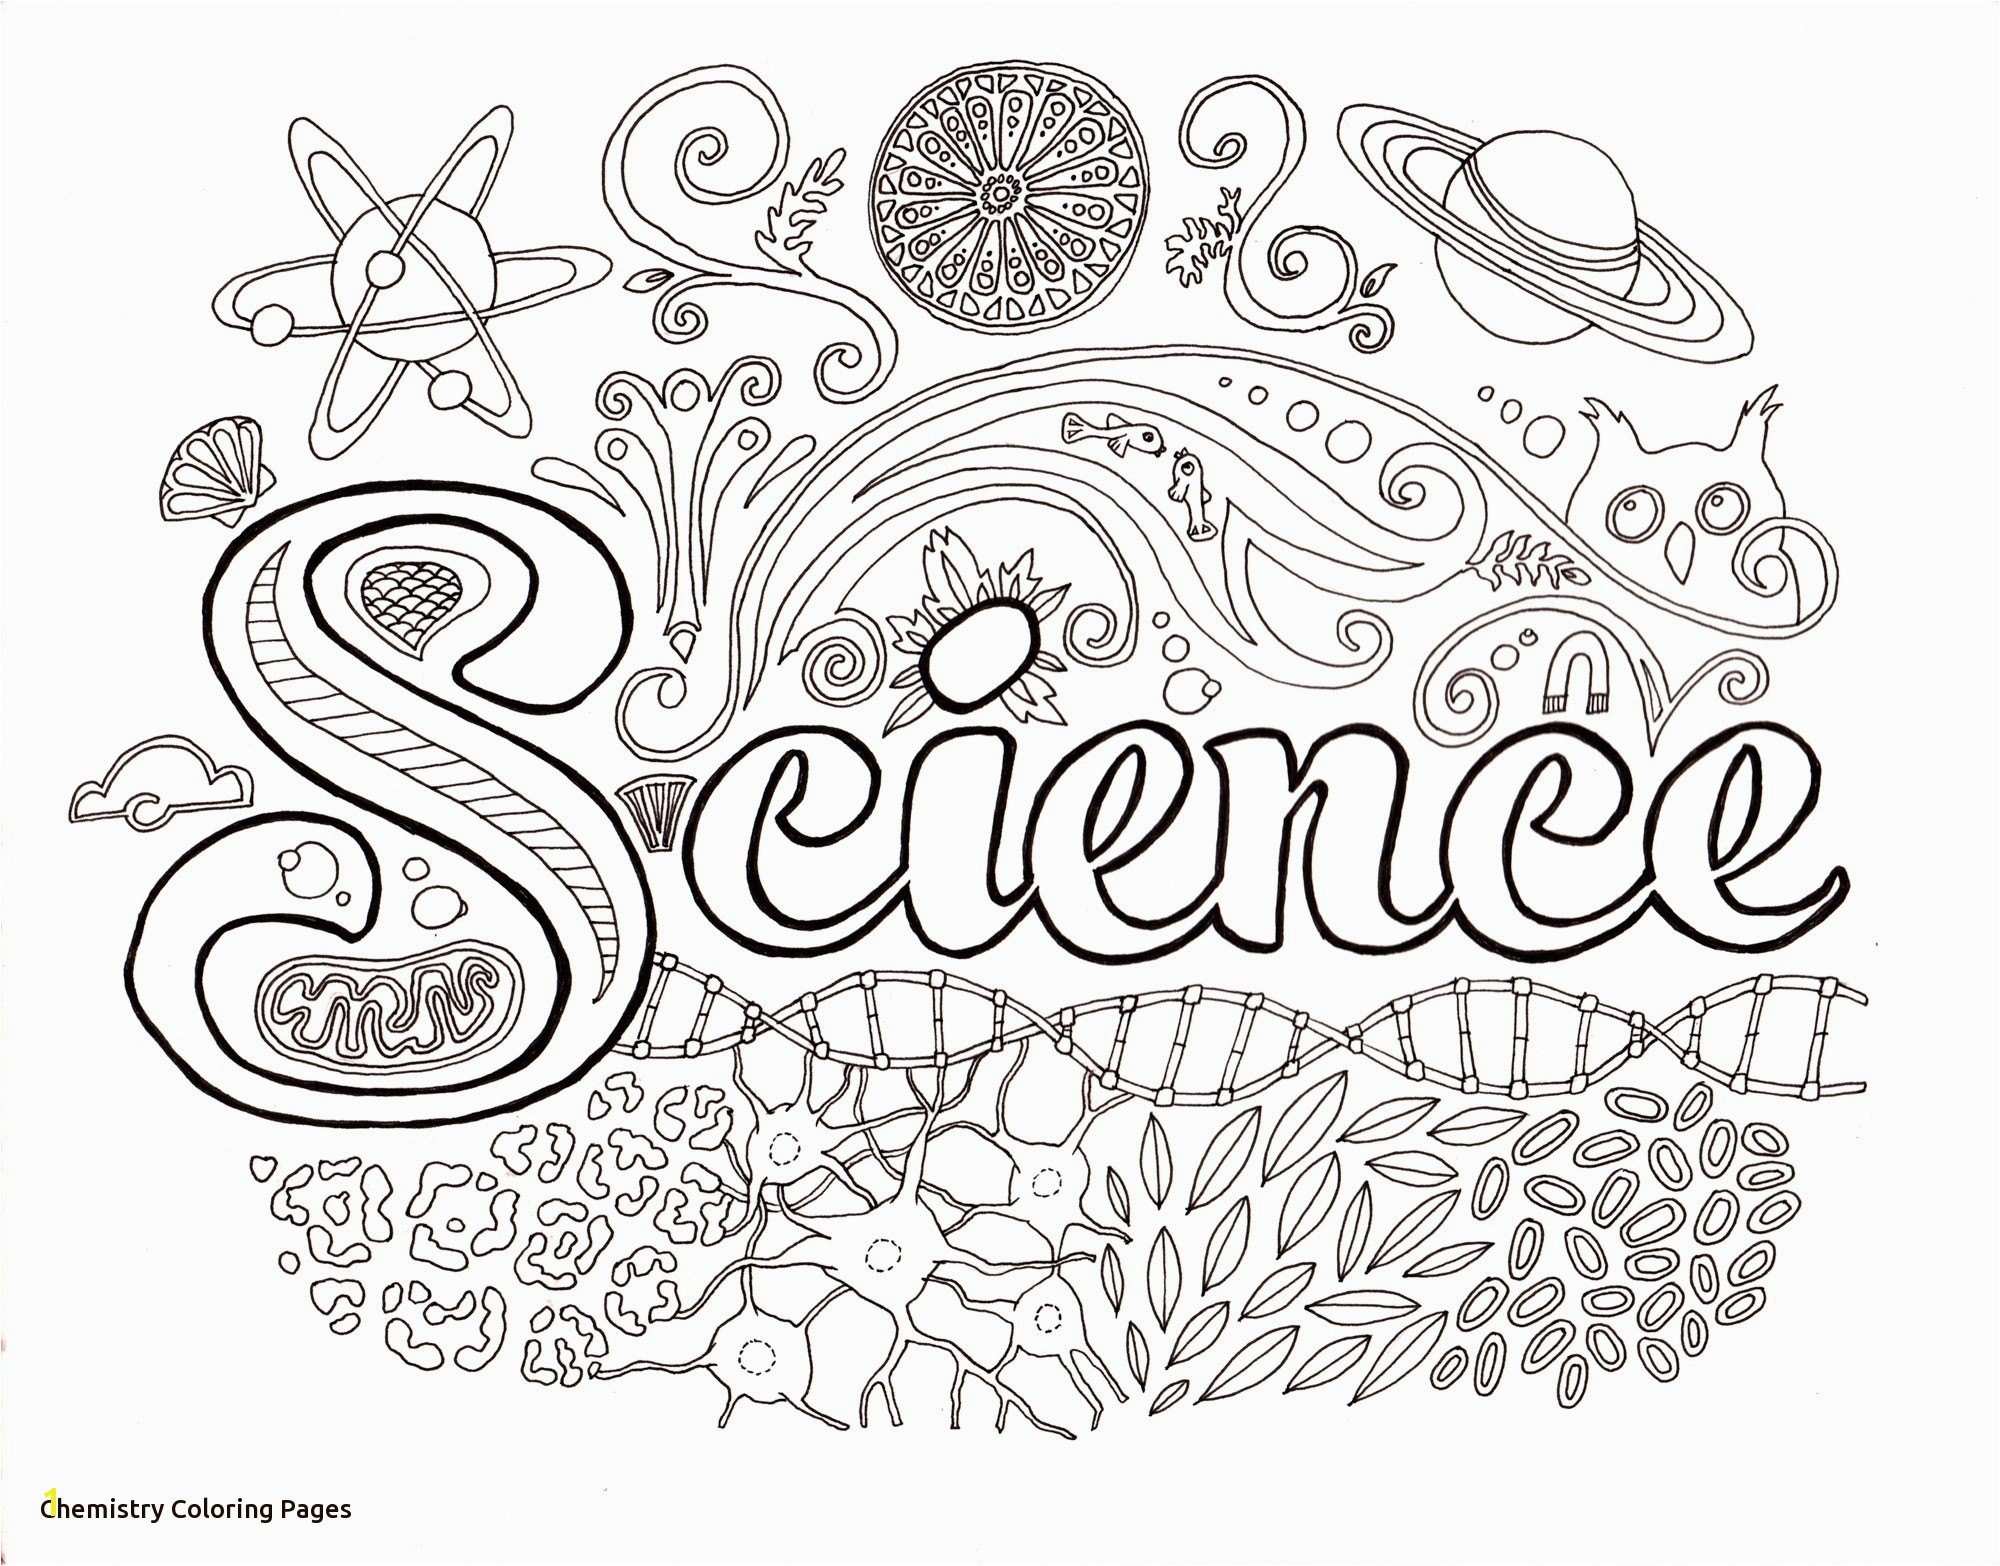 Free Printable Science Coloring Pages New soar Chemistry Coloring Pages Free Printable Science 9551